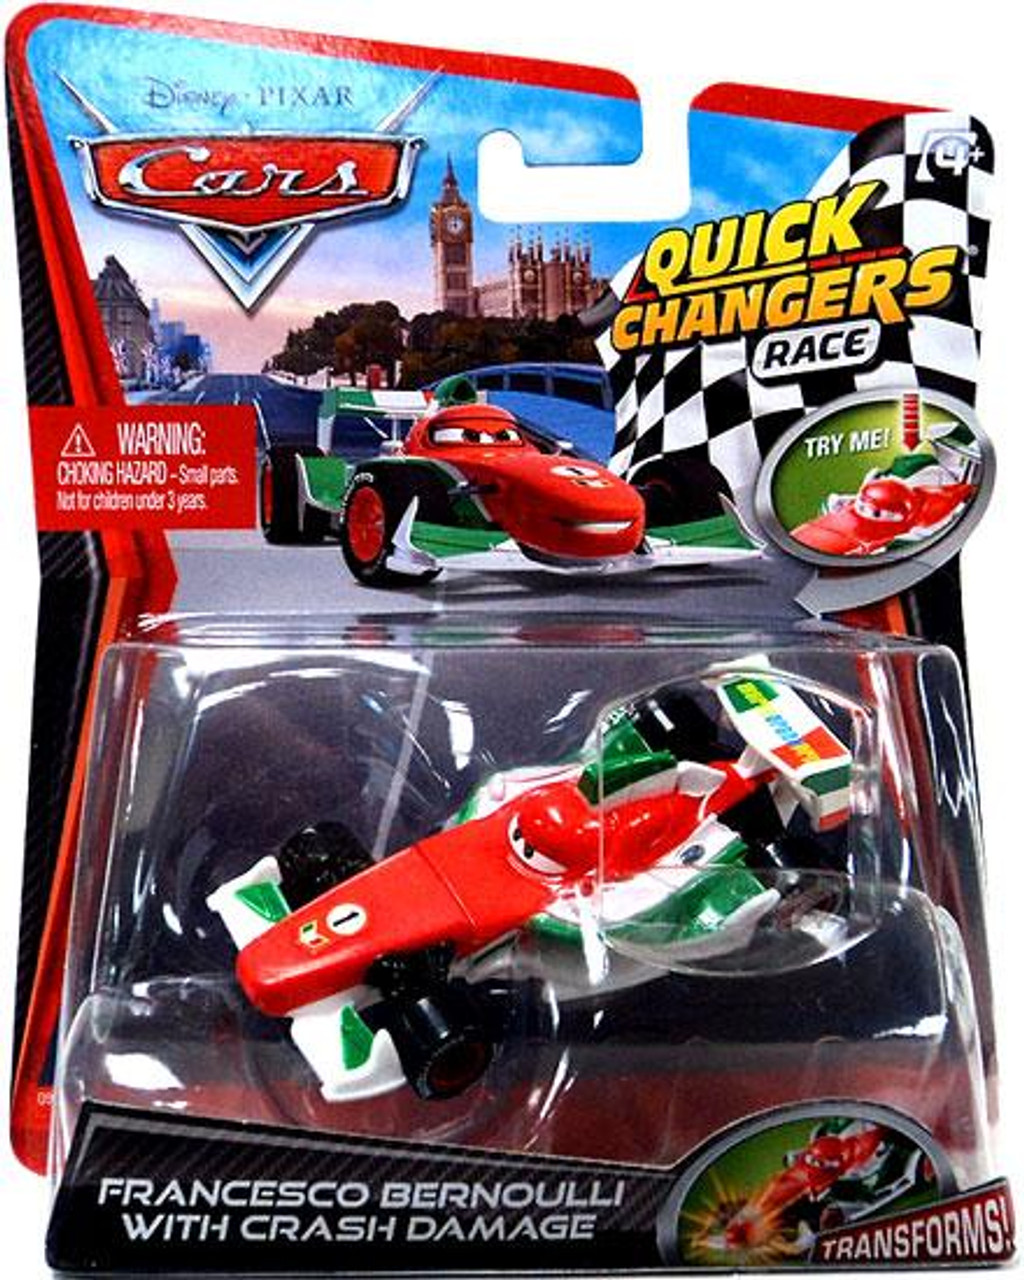 Disney Cars Cars 2 Quick Changers Race Francesco Bernoulli with Crash Damage Diecast Car